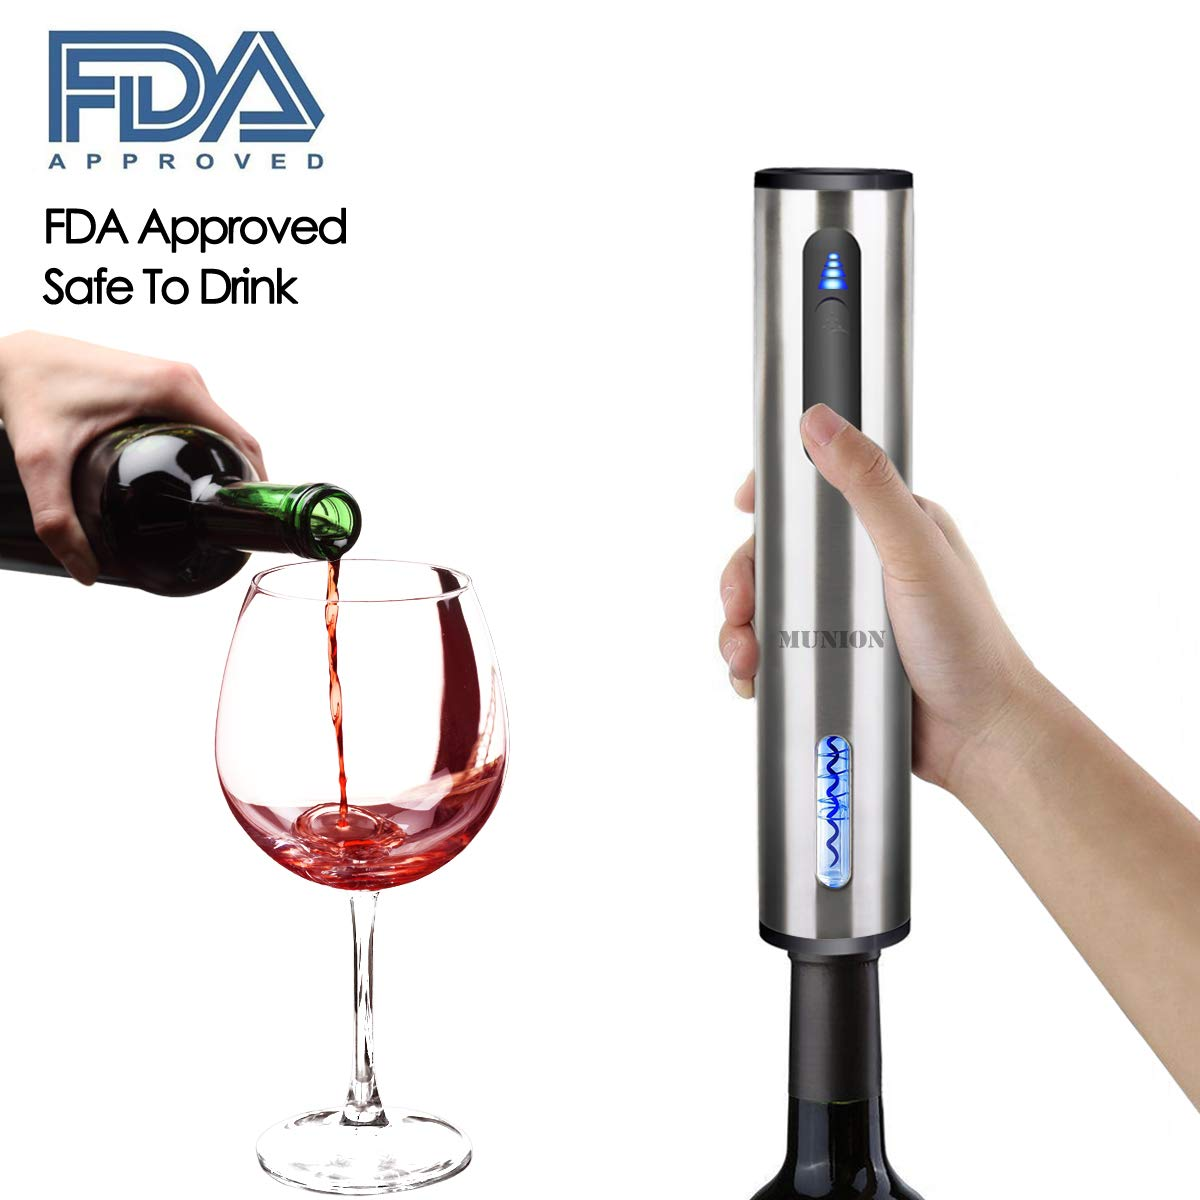 Electric Wine Opener Automatic Corkscrew Rechargeable Cordless Wine Bottle Opener with Removeable Foil Cutter Silver Wine Corkscrew by MUNION (Image #6)